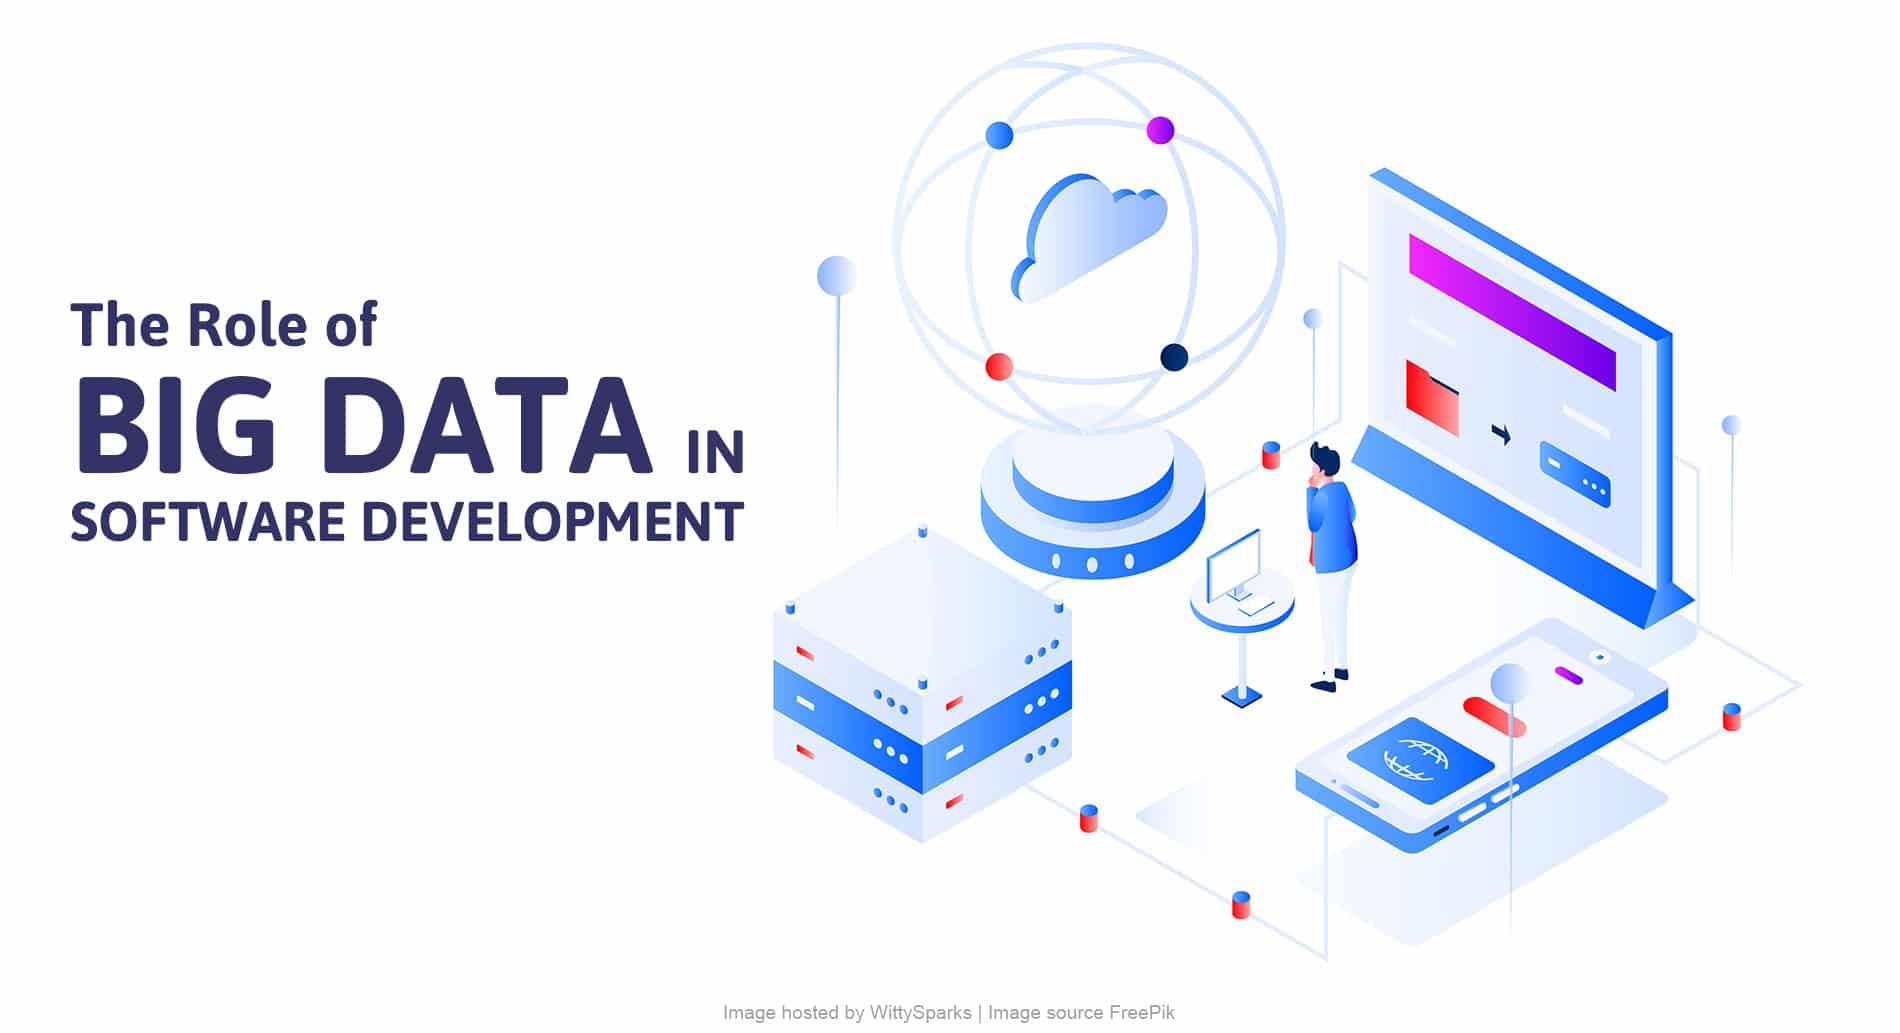 The Role of Big Data in Software Development